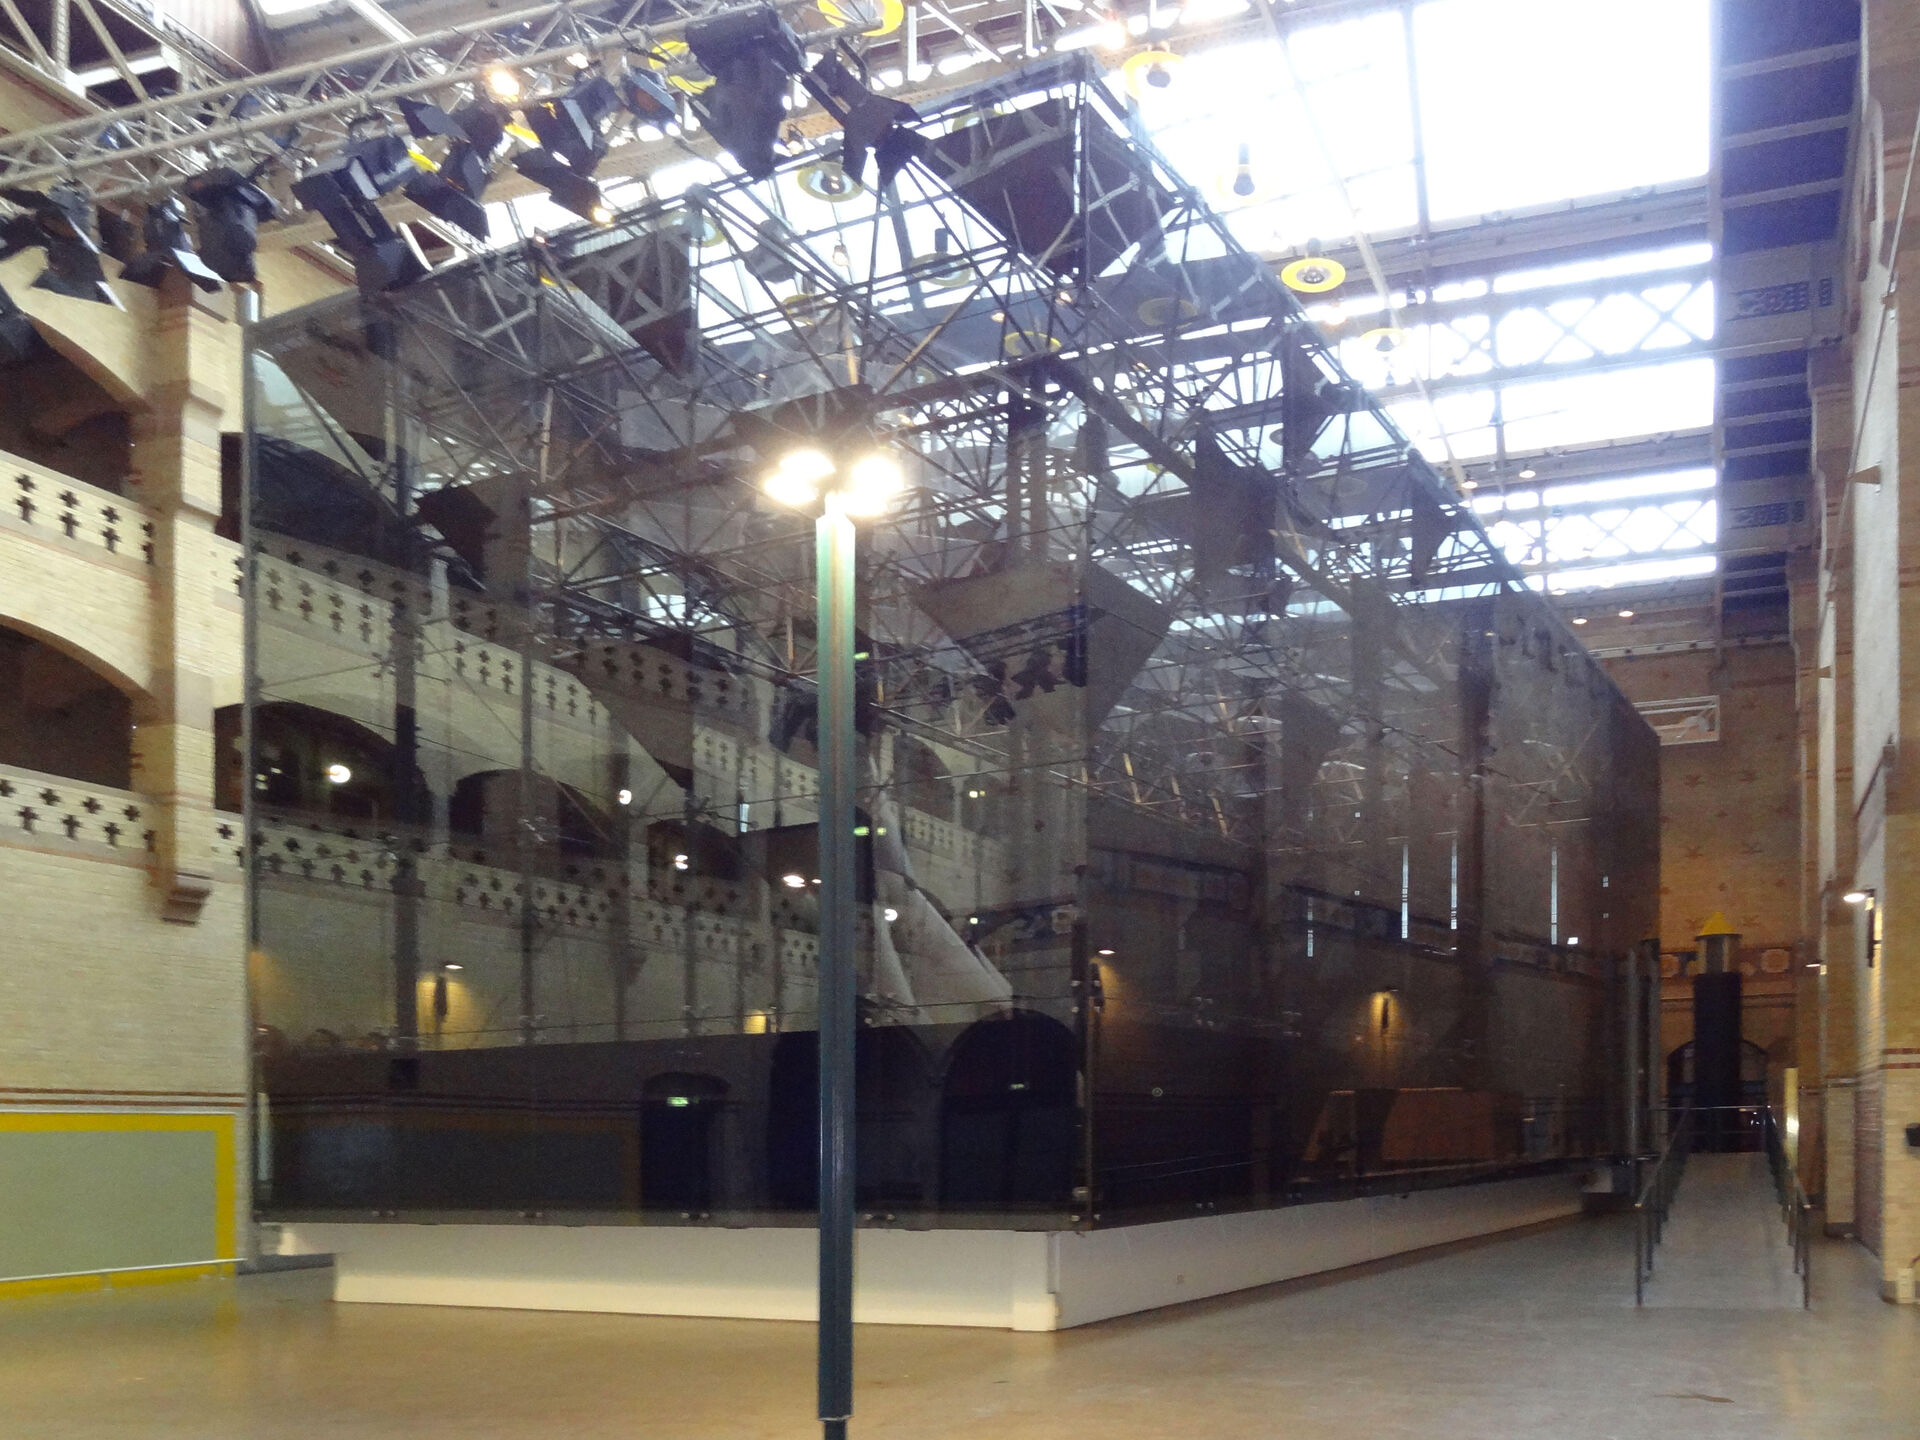 Graanbeurszaal (the corn exchange hall) before-after